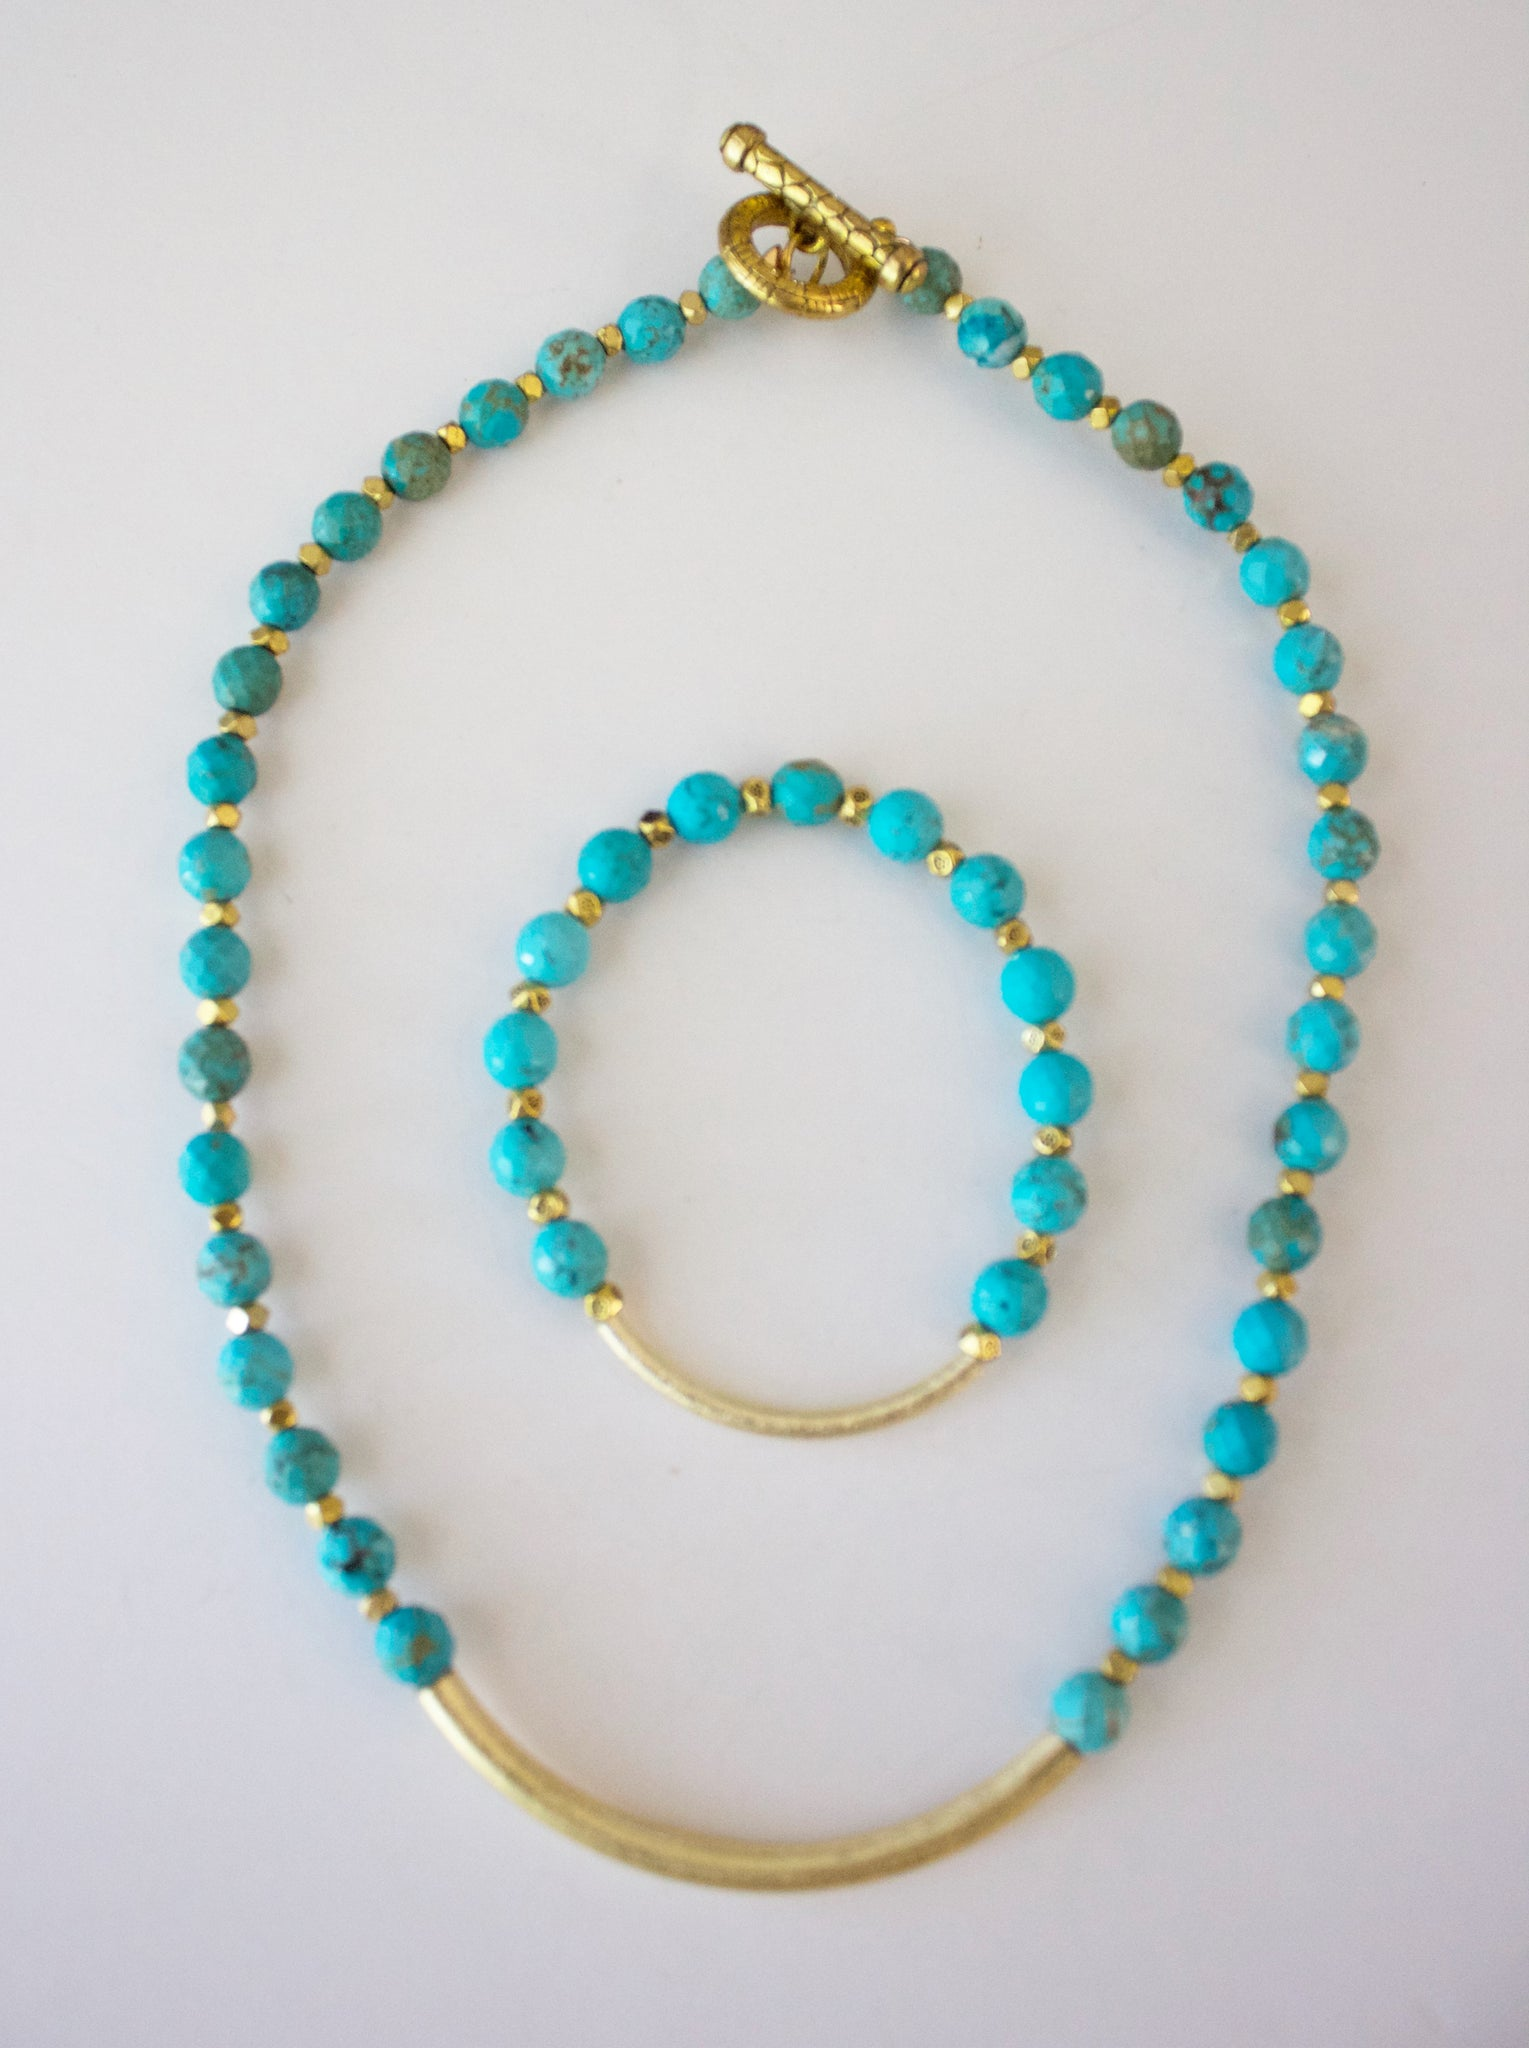 342 - Turquoise Barre Necklace Set